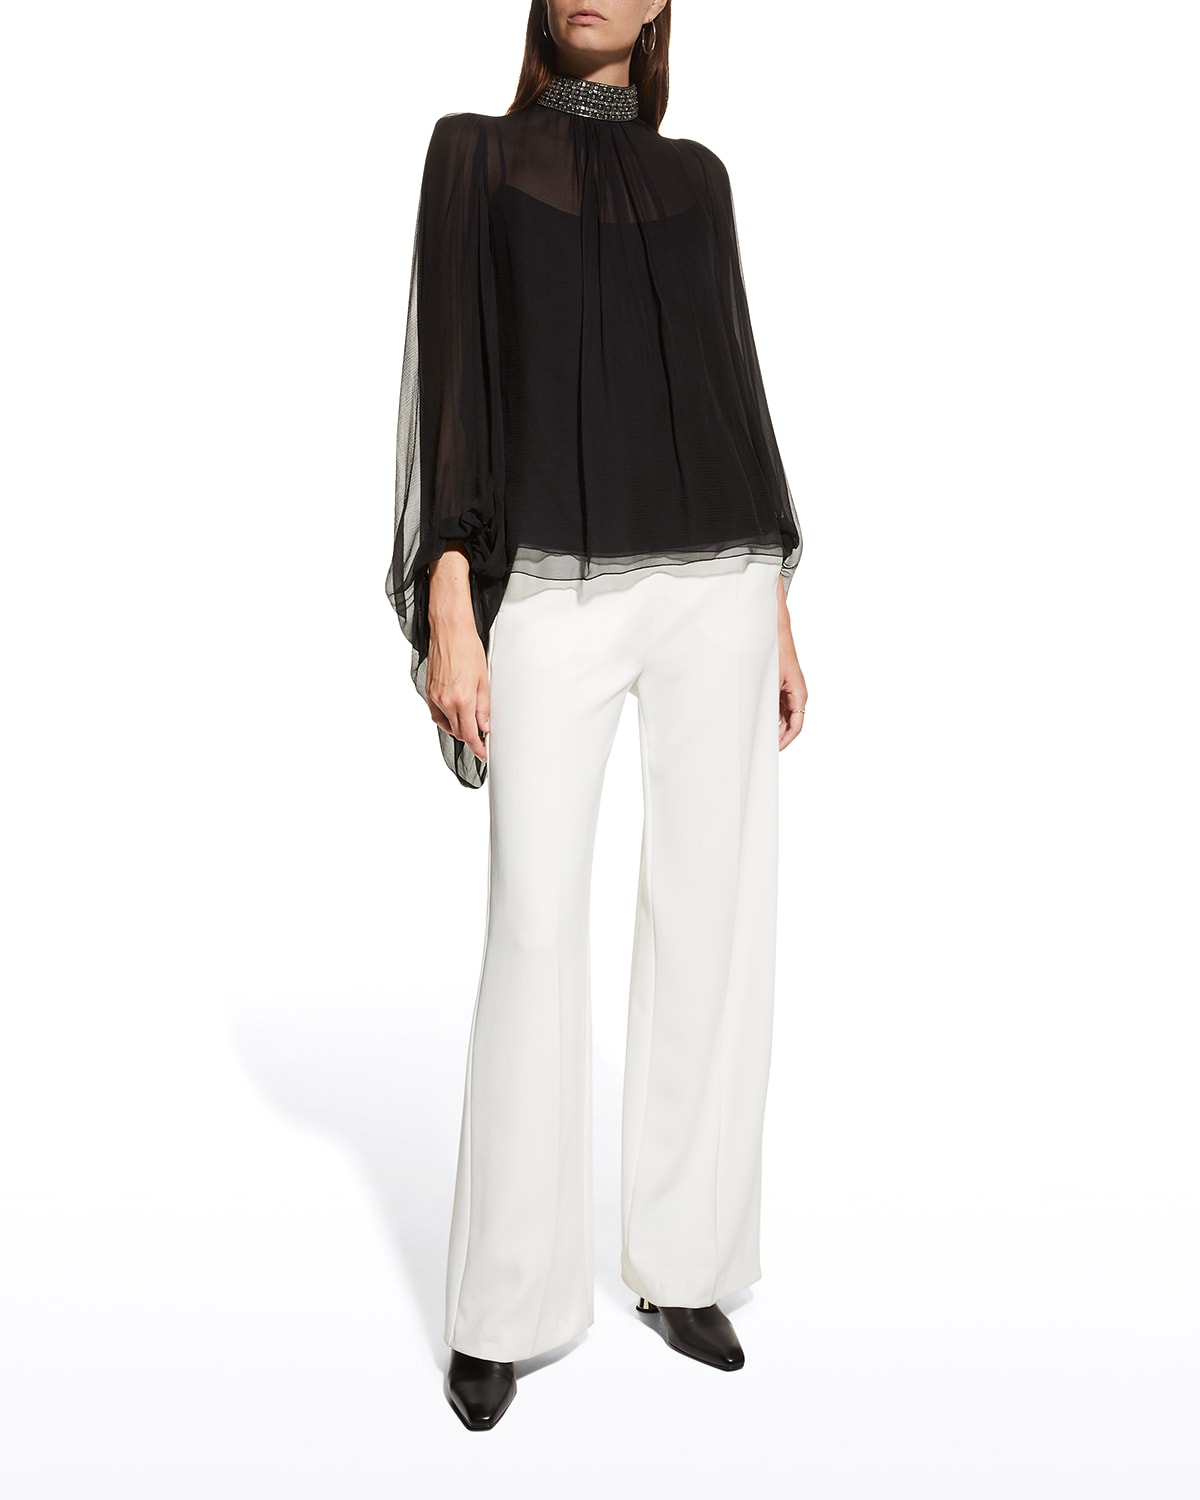 Semi-sheer Jeweled Collar Blouse w/ Exaggerate Sleeves